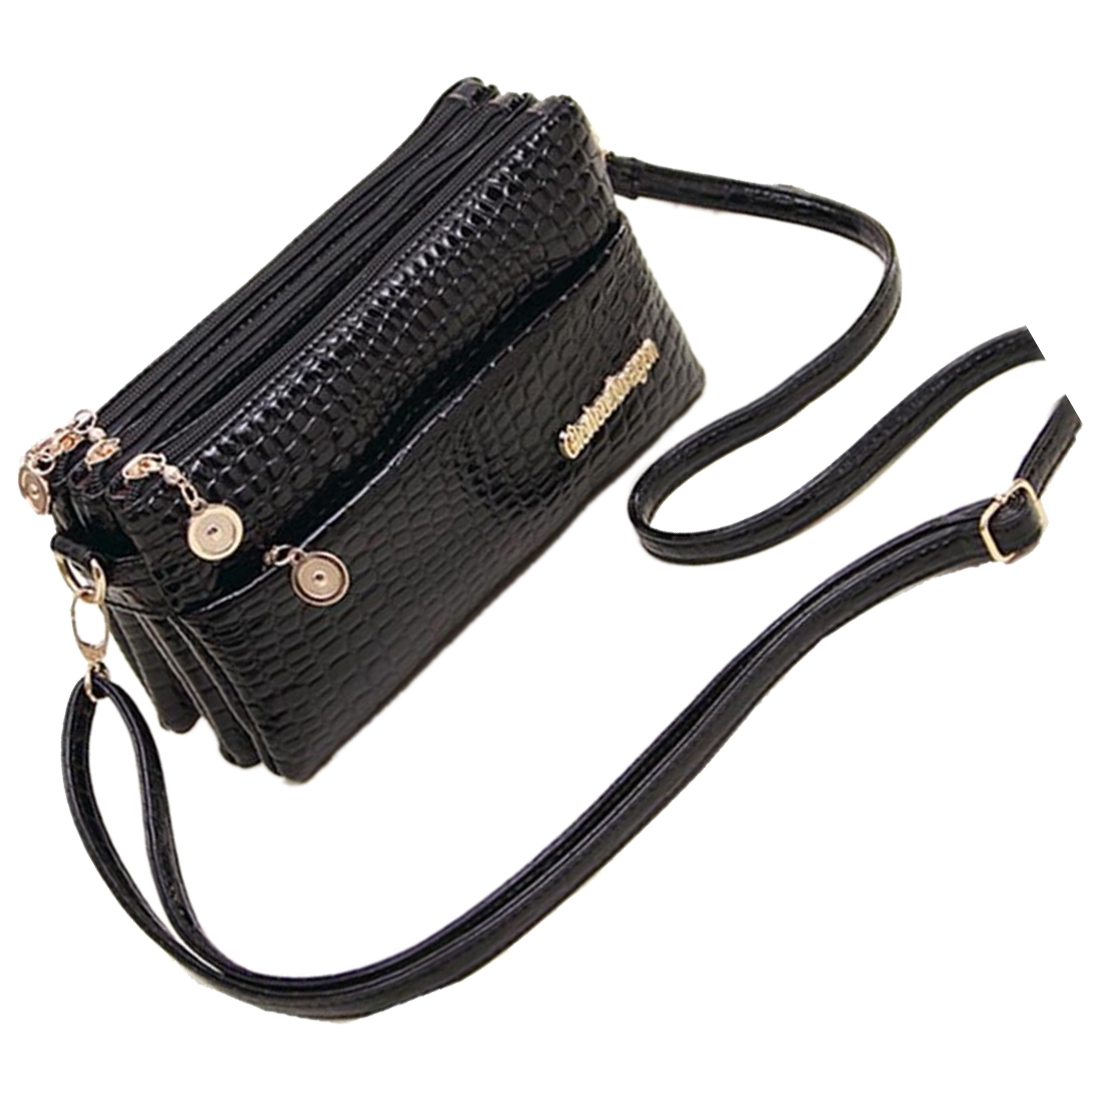 FGGS Hot Women Handbags Small Shoulder Bag Crocodile Pattern Women Messenger Bags For Women Handbag Clutch Black